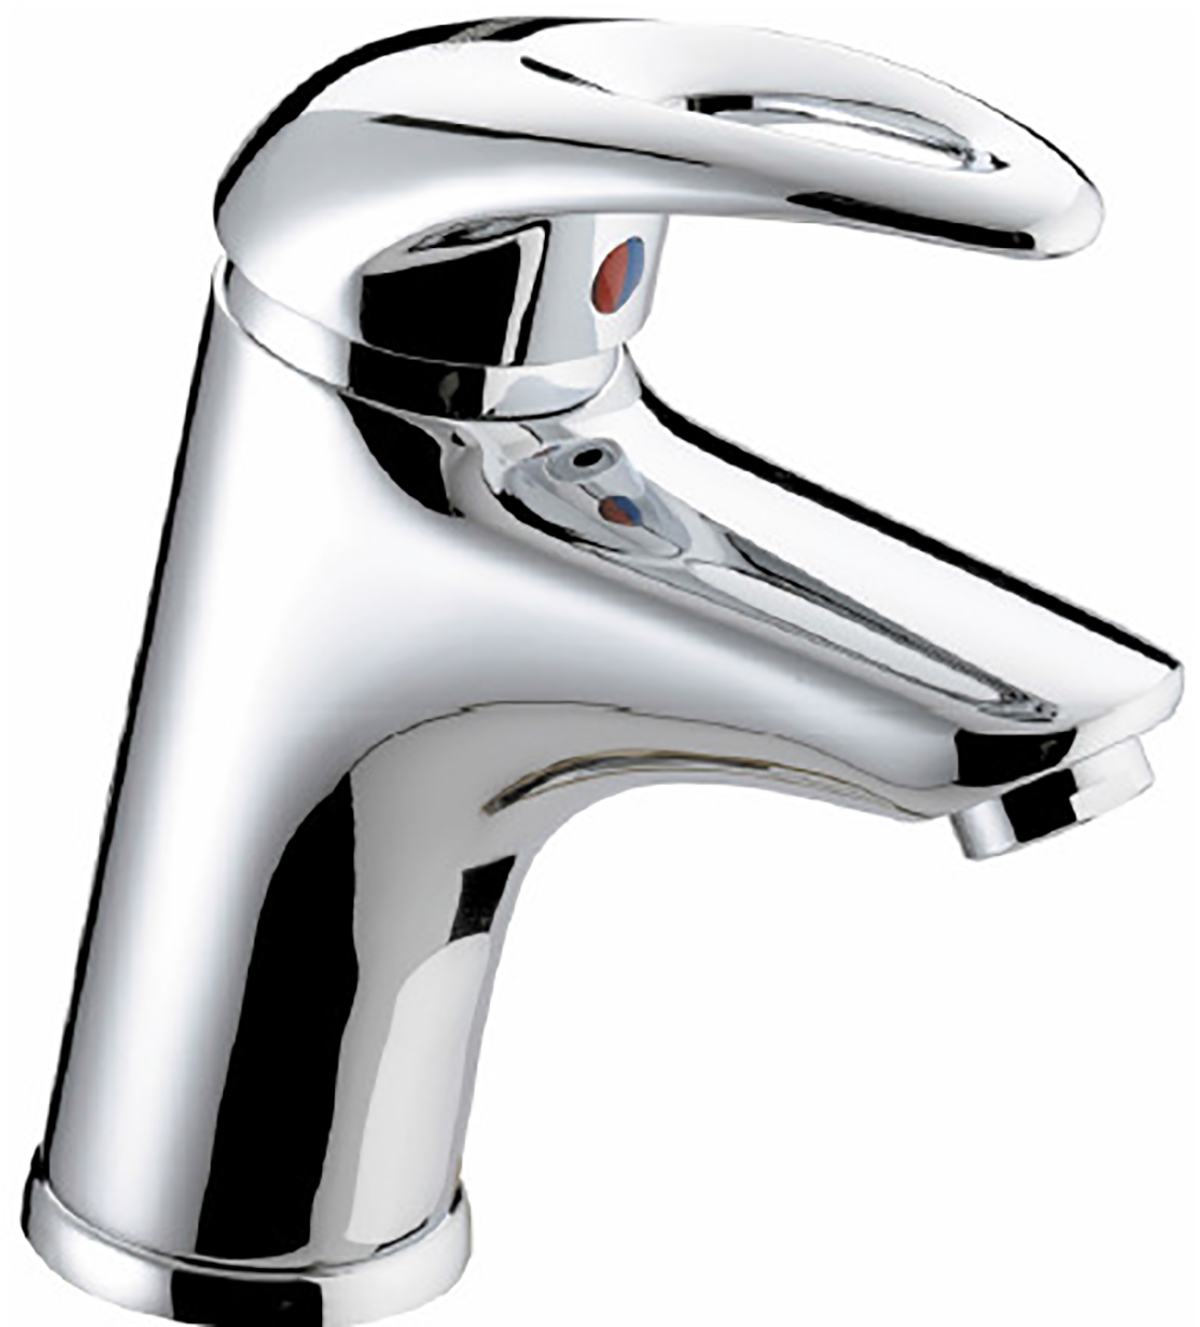 Basin Mixer with Clicker Waste - 4 Litre Flow Limit